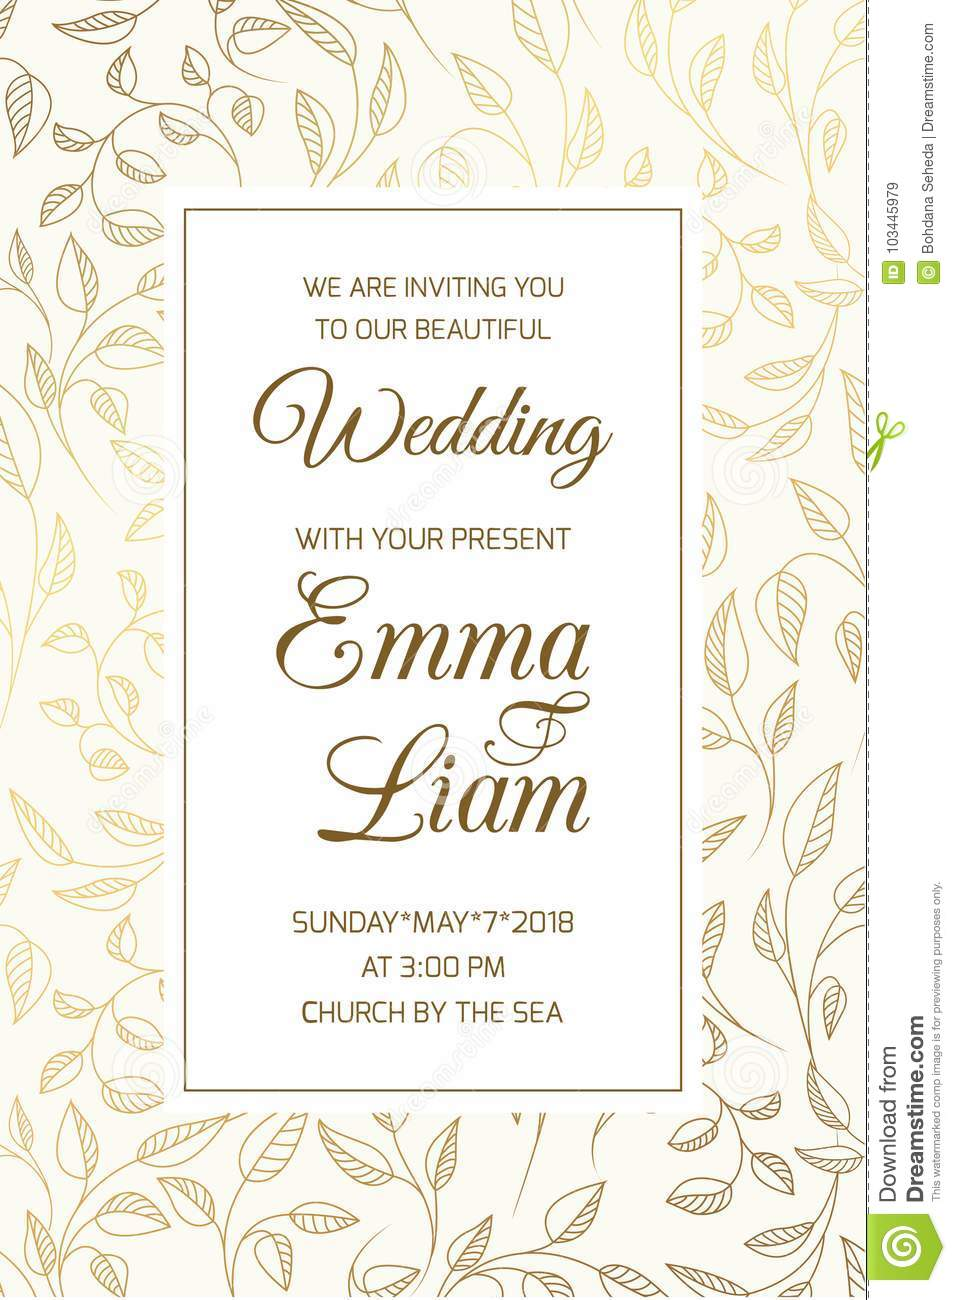 Wedding Invitation Card Template Swirl Leaves Gold Stock Vector